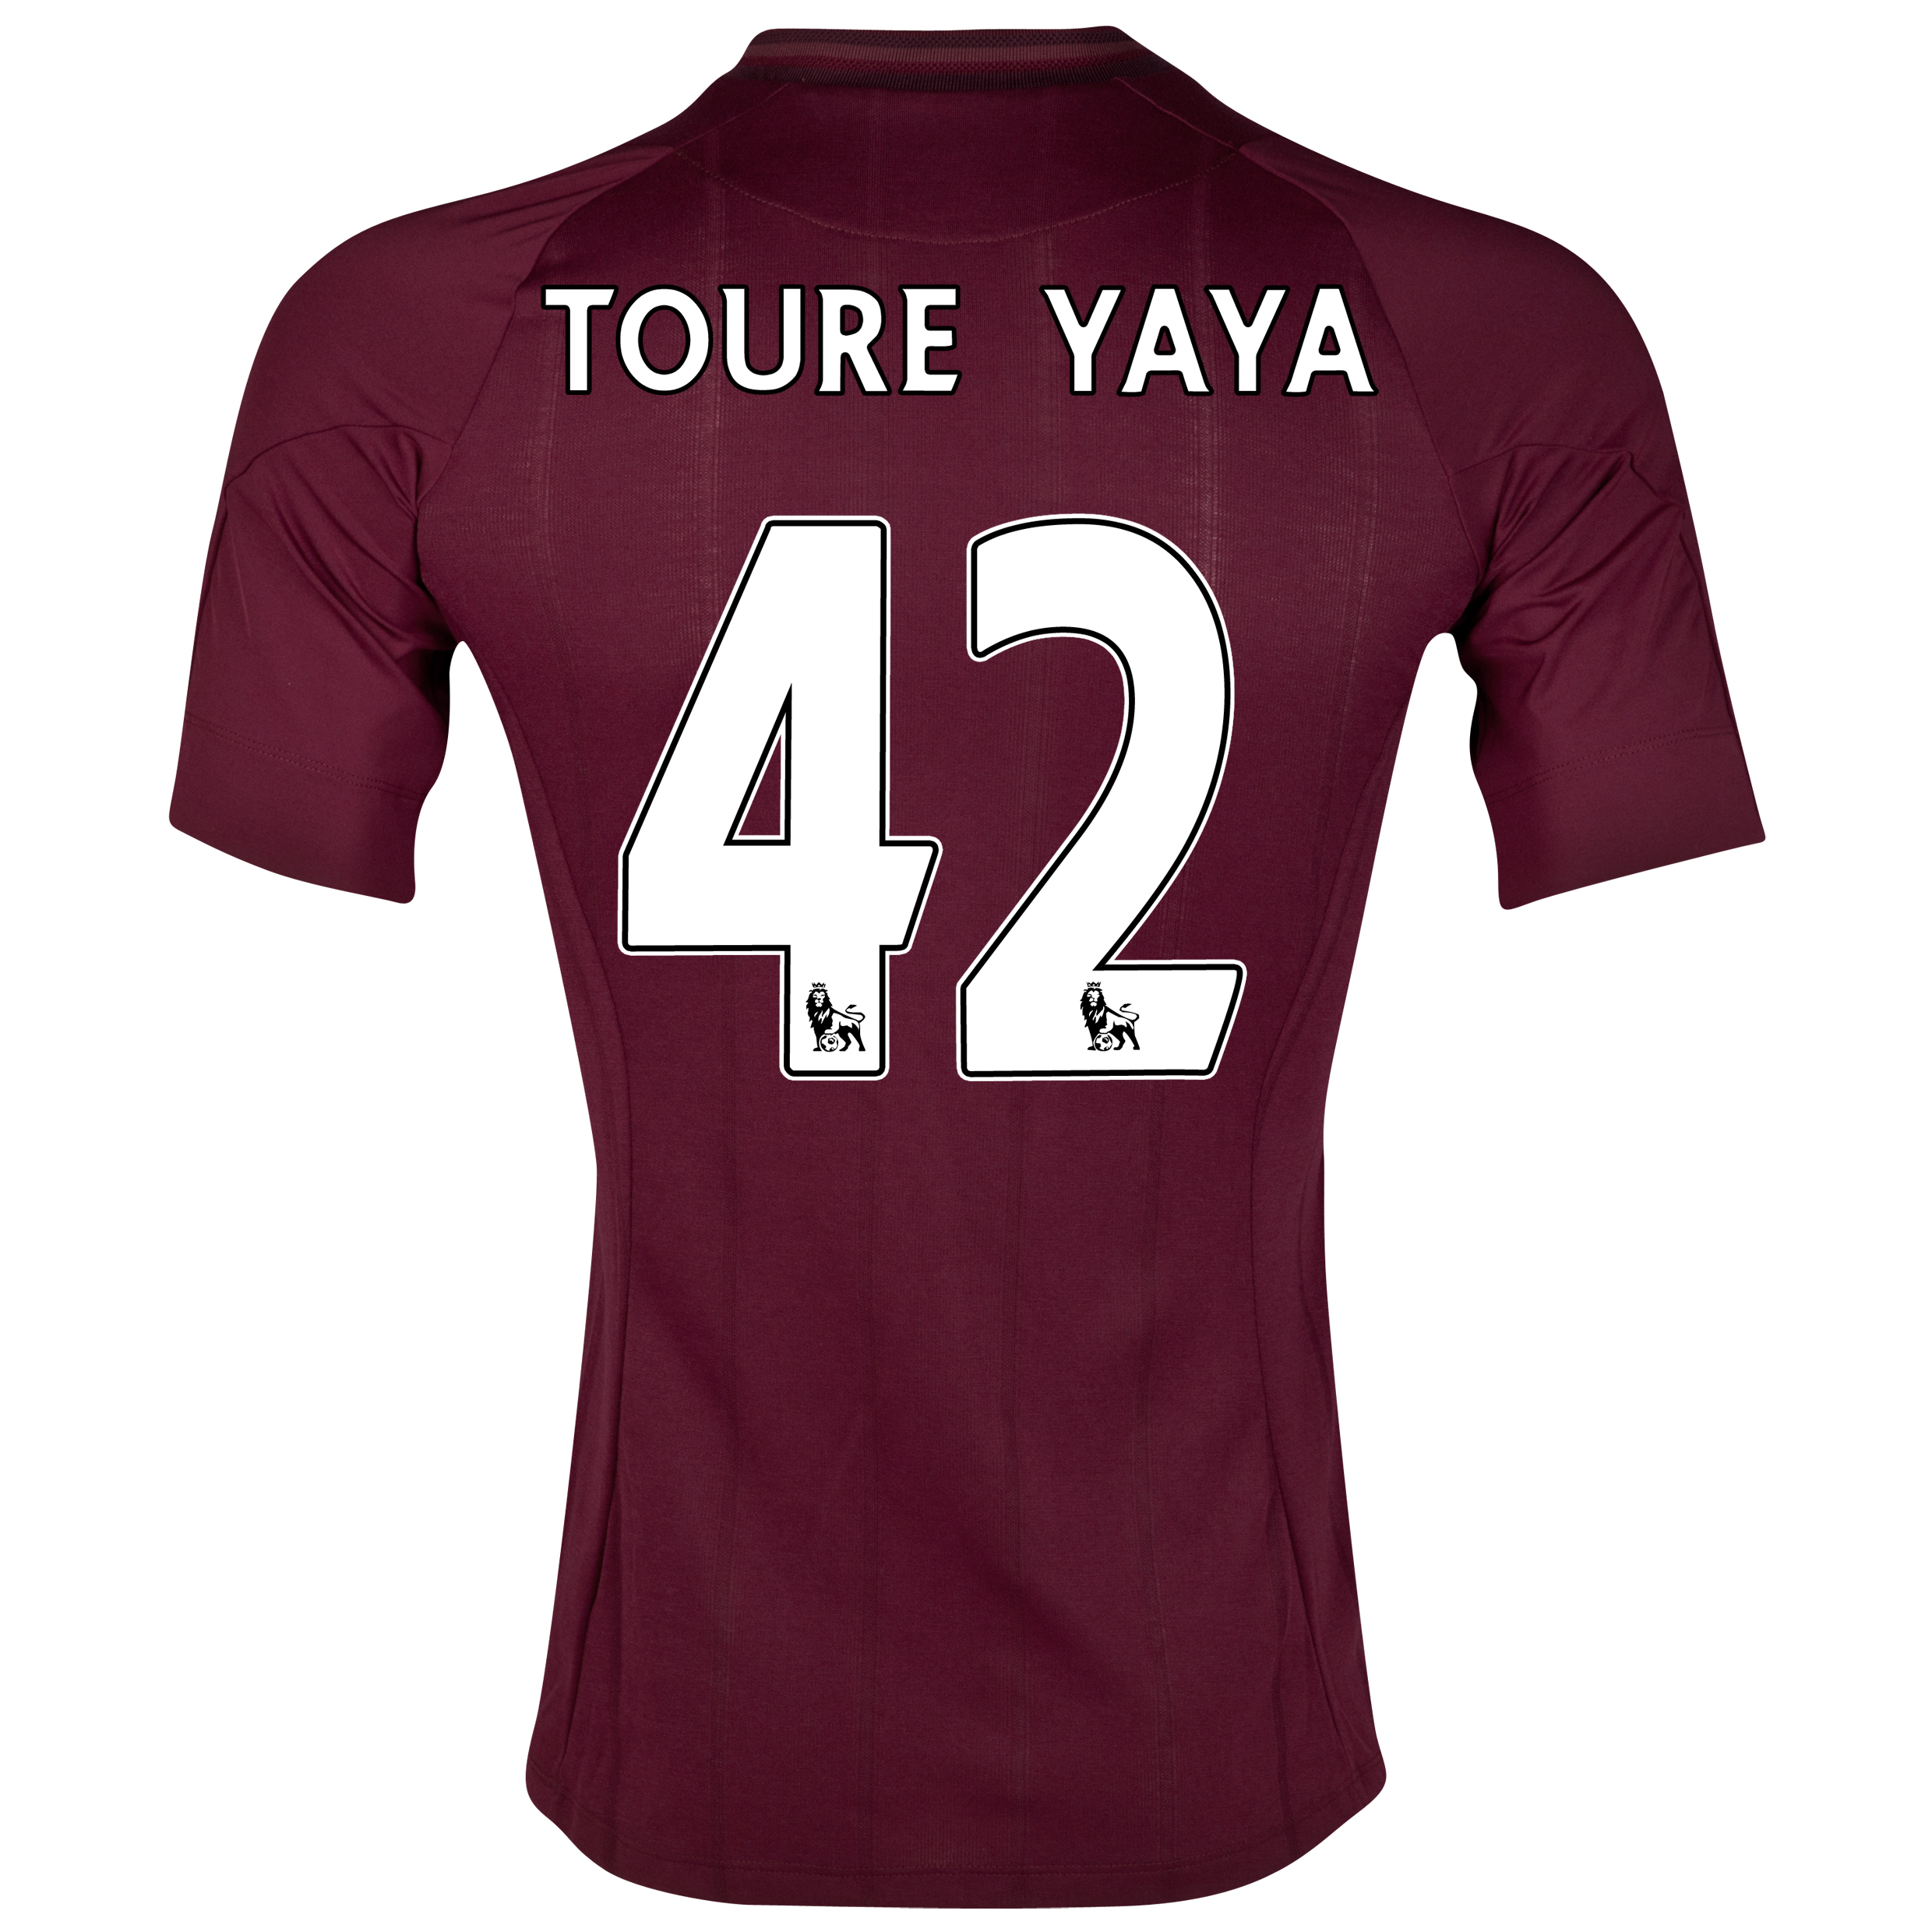 Manchester City Away Shirt 2012/13  - Junior with Toure Yaya 42 printing